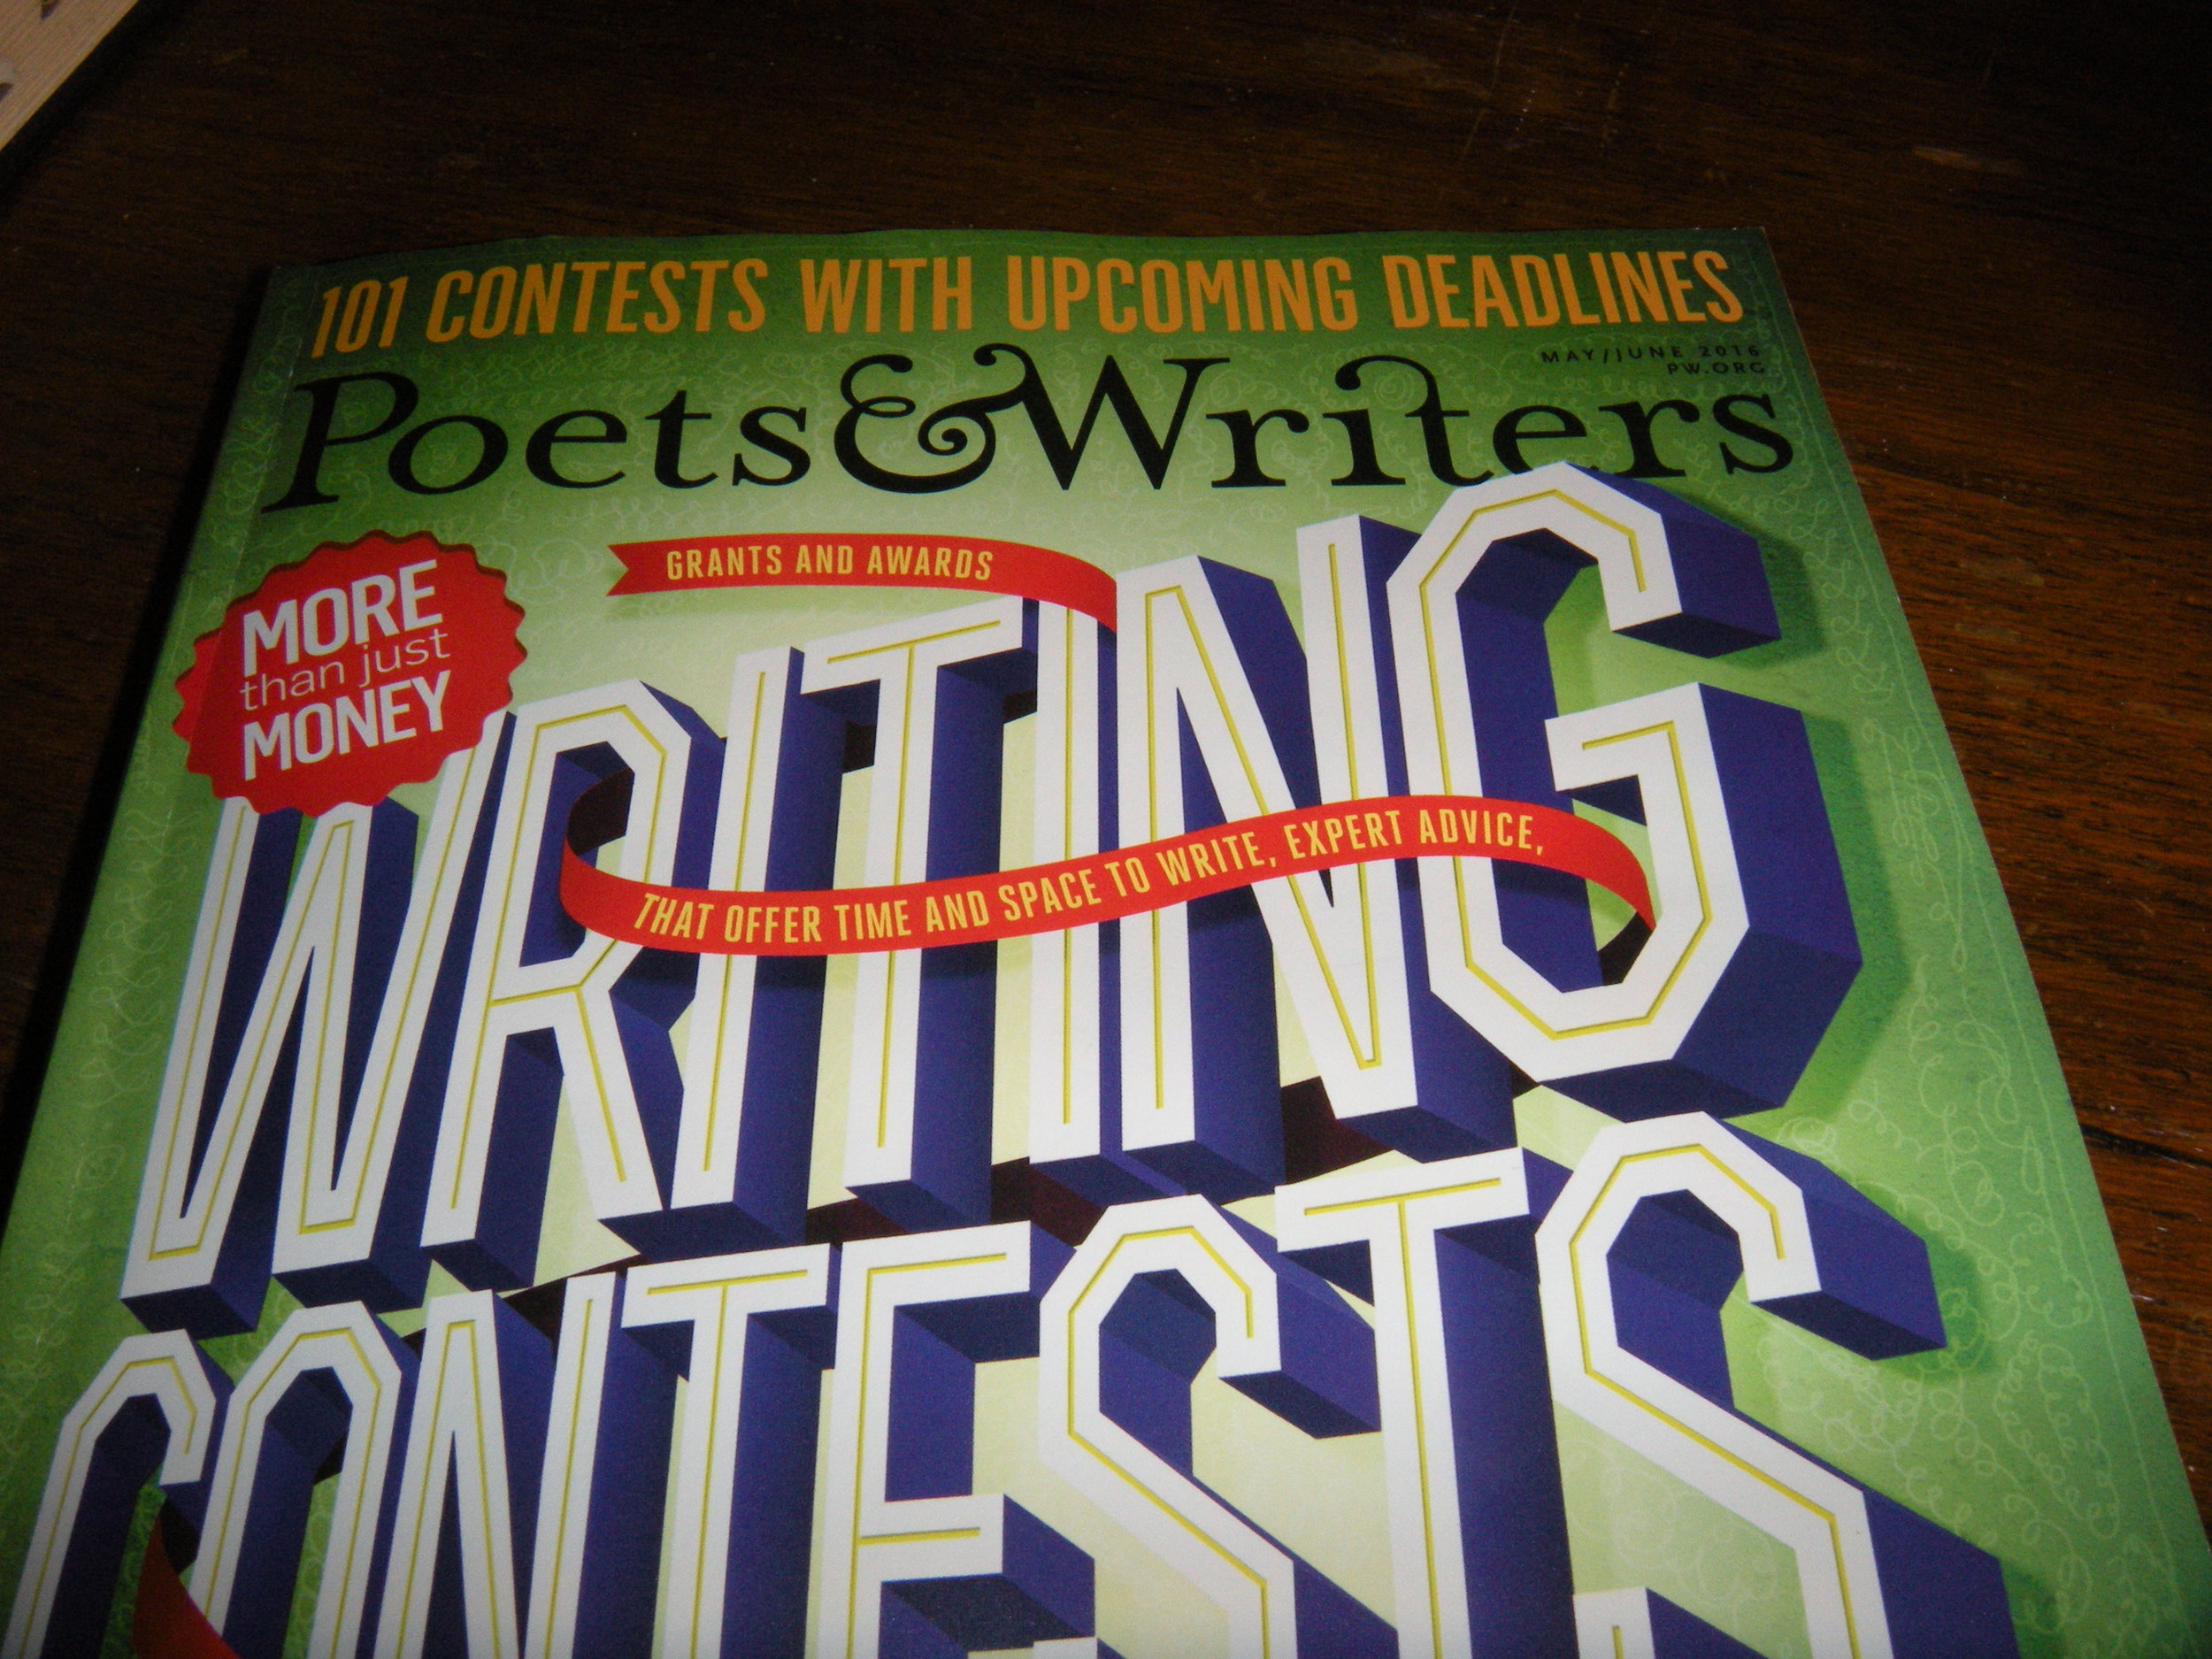 Though it's mostly advertisements about MFA programs and writers' retreats, the articles are helpful and informative.